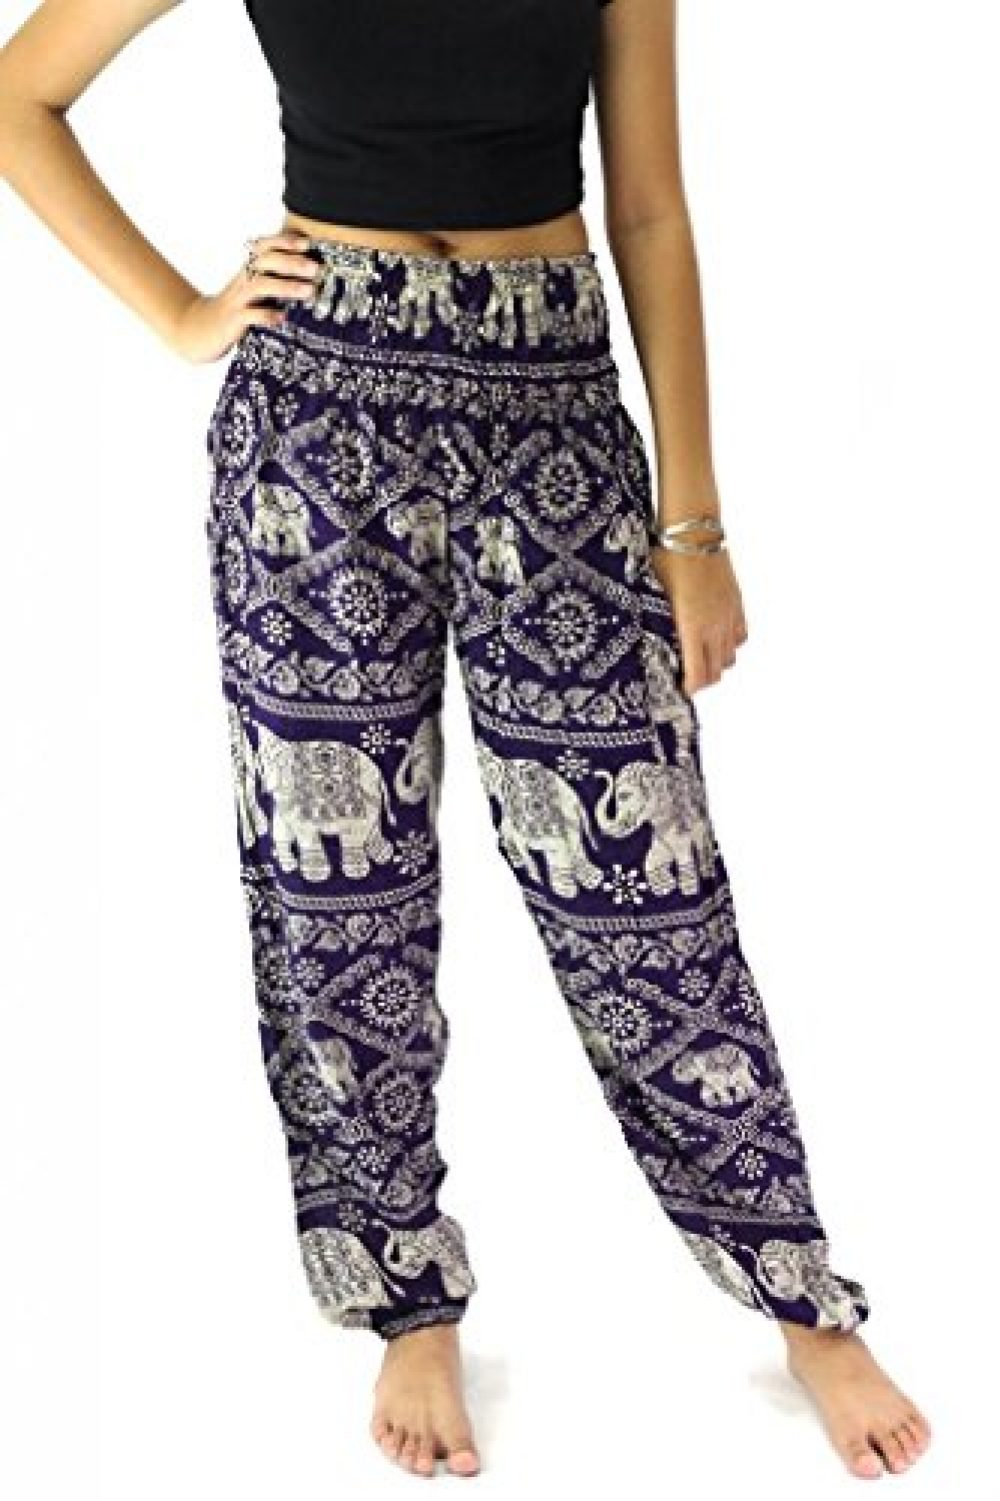 B Bangkok Pants Women S Harem Pants Bohemian Clothing Hippie Boho Elephant Pant Beach Casual Smocked High Waist Purple One Size Moon Maroon